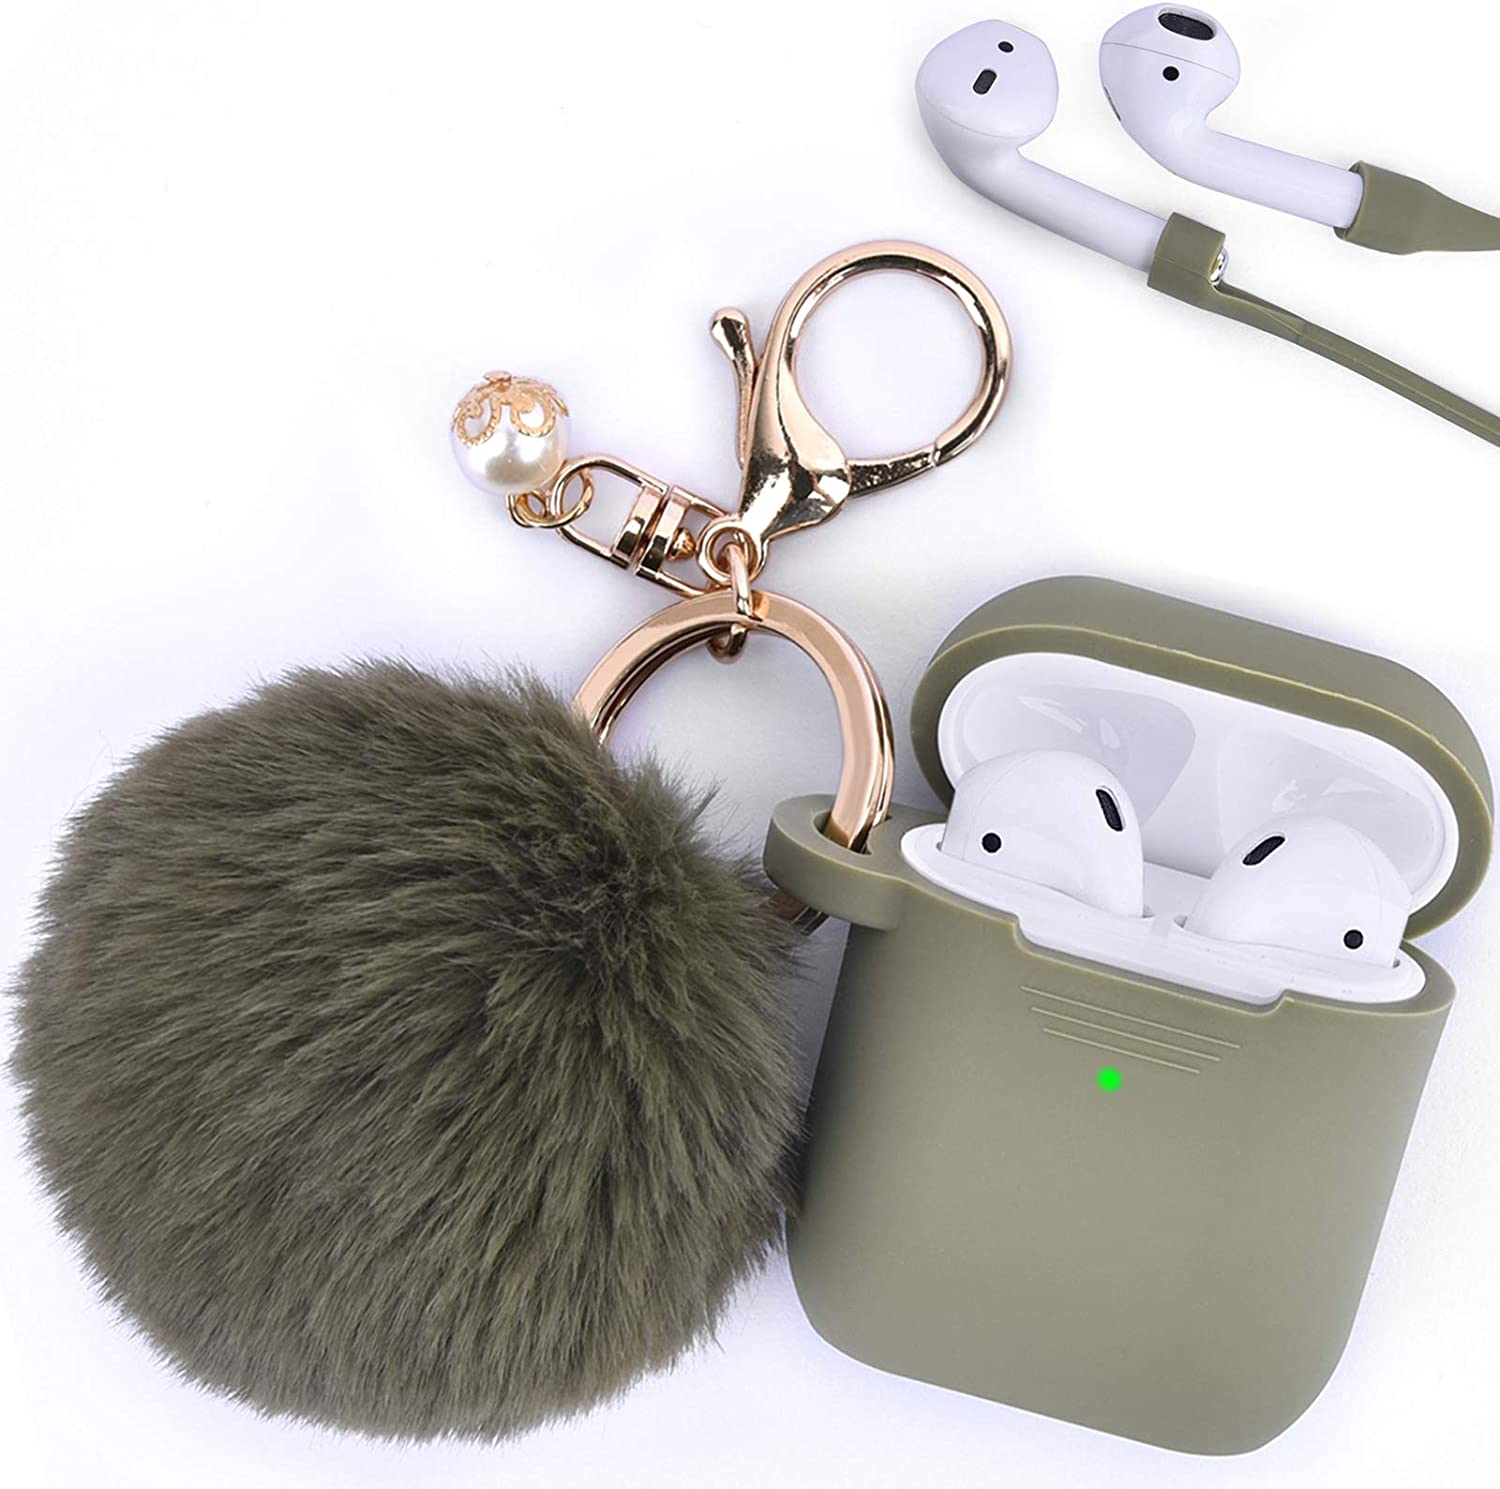 Filoto Case for Airpods, Airpod Case Cover for Apple Airpods 2&1 Charging Case, Cute Air Pods Silicone Protective Accessories Cases/Keychain/Pompom/Strap, Best Gift for Girls and Women, Olive Green